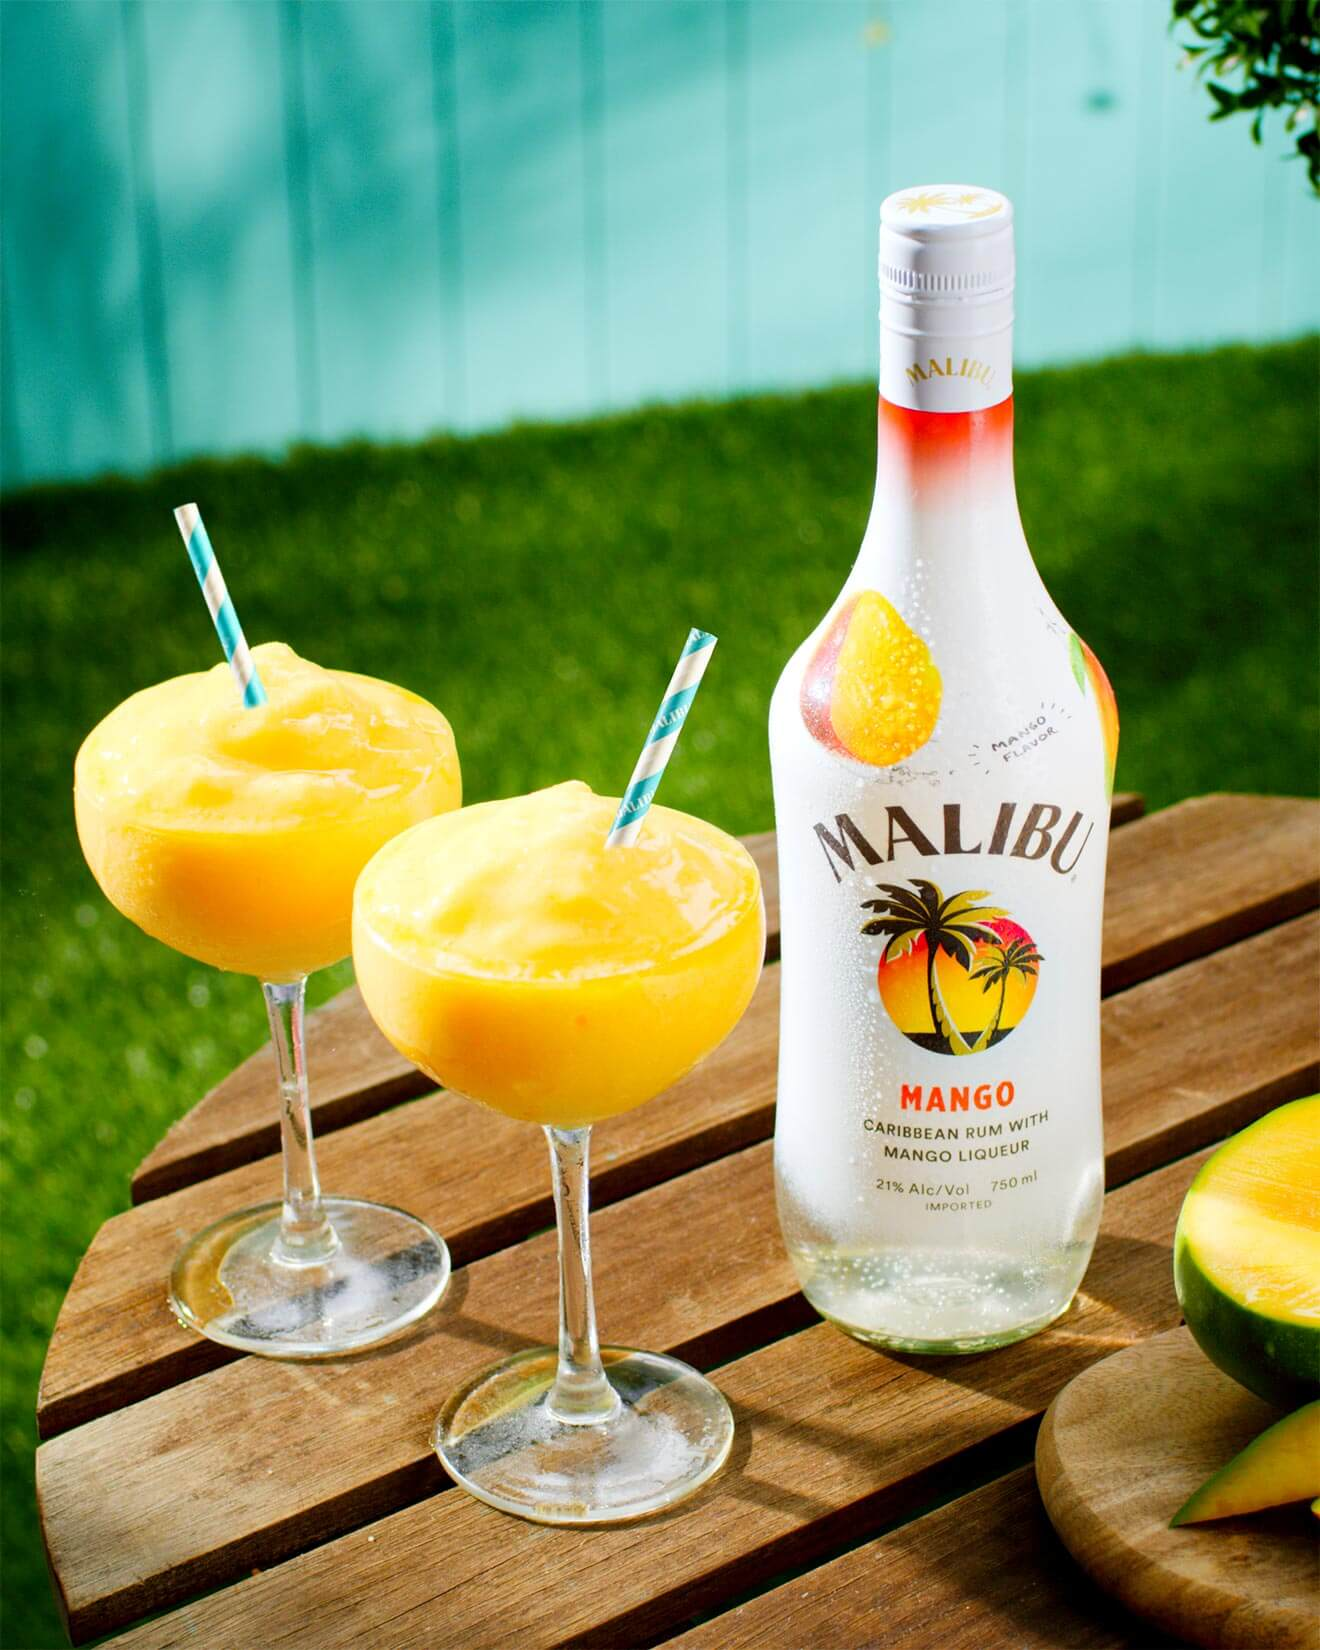 Malibu Mango Frozen Daiquiri, frozen cocktail with bottle, wooden round table